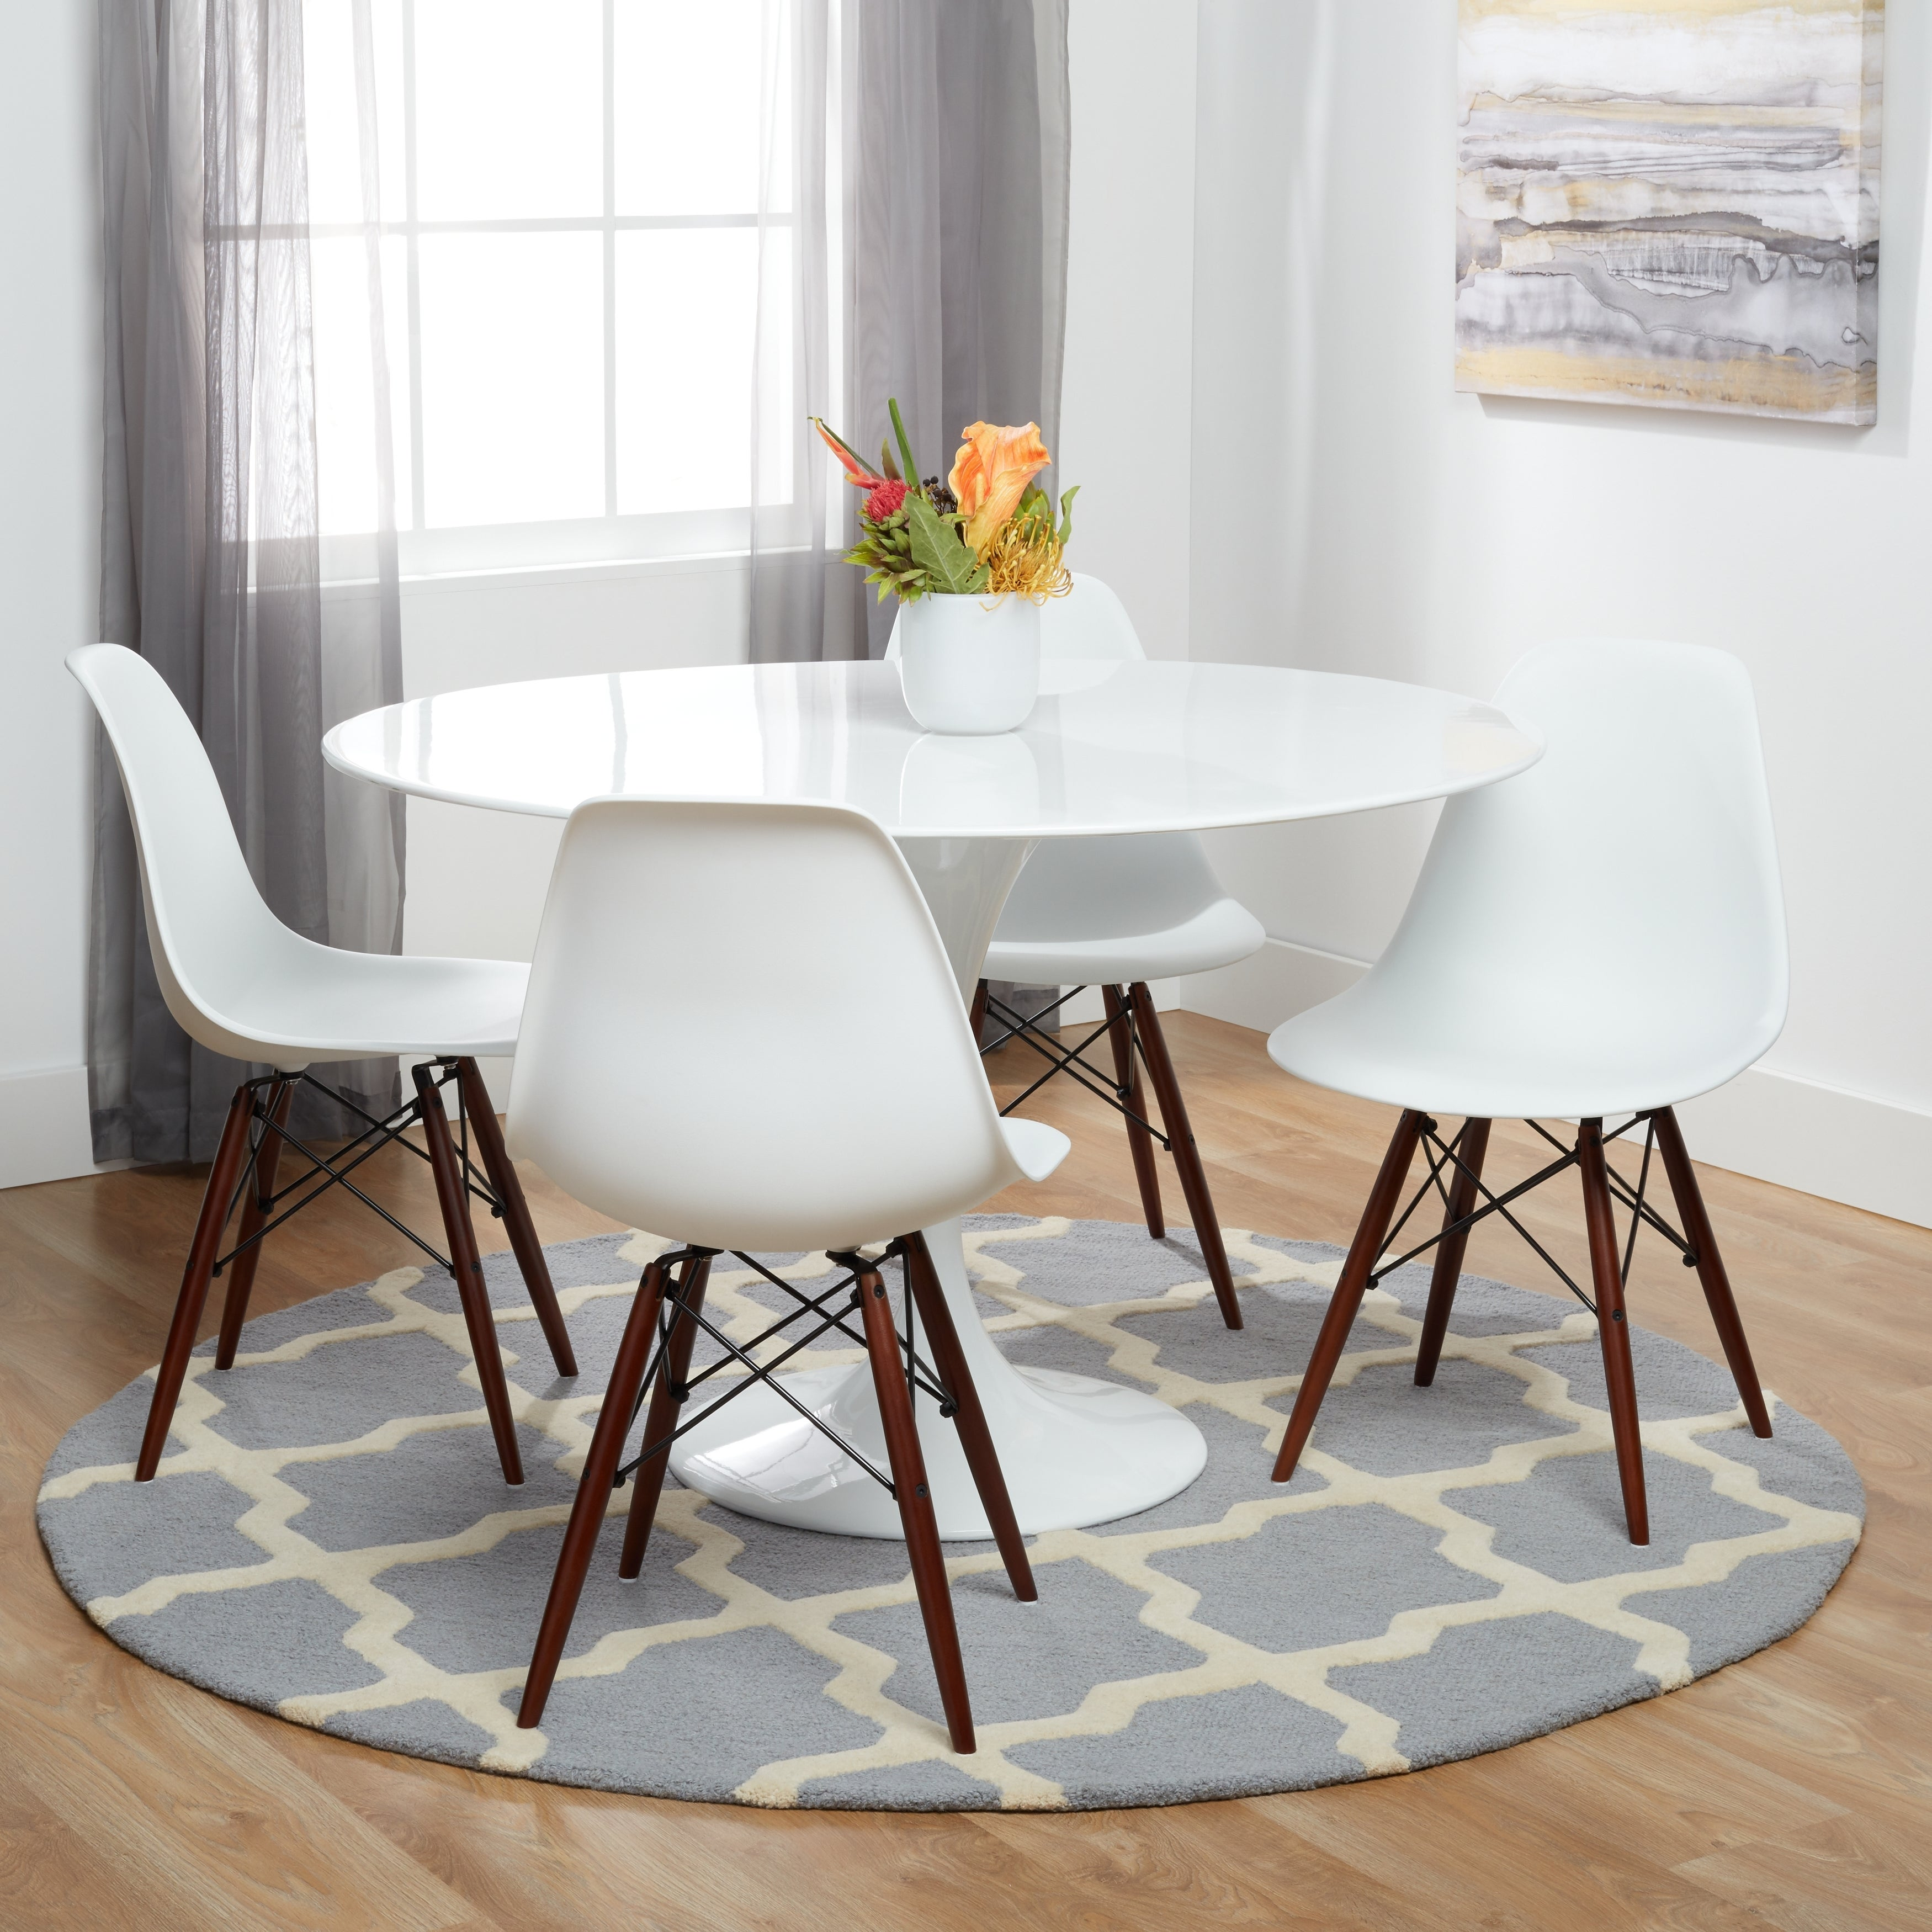 Poly and Bark Vortex Dining Chair with Walnut Legs (Set of 4)  sc 1 st  Overstock.com & Buy Set of 4 Kitchen u0026 Dining Room Chairs Online at Overstock.com ...